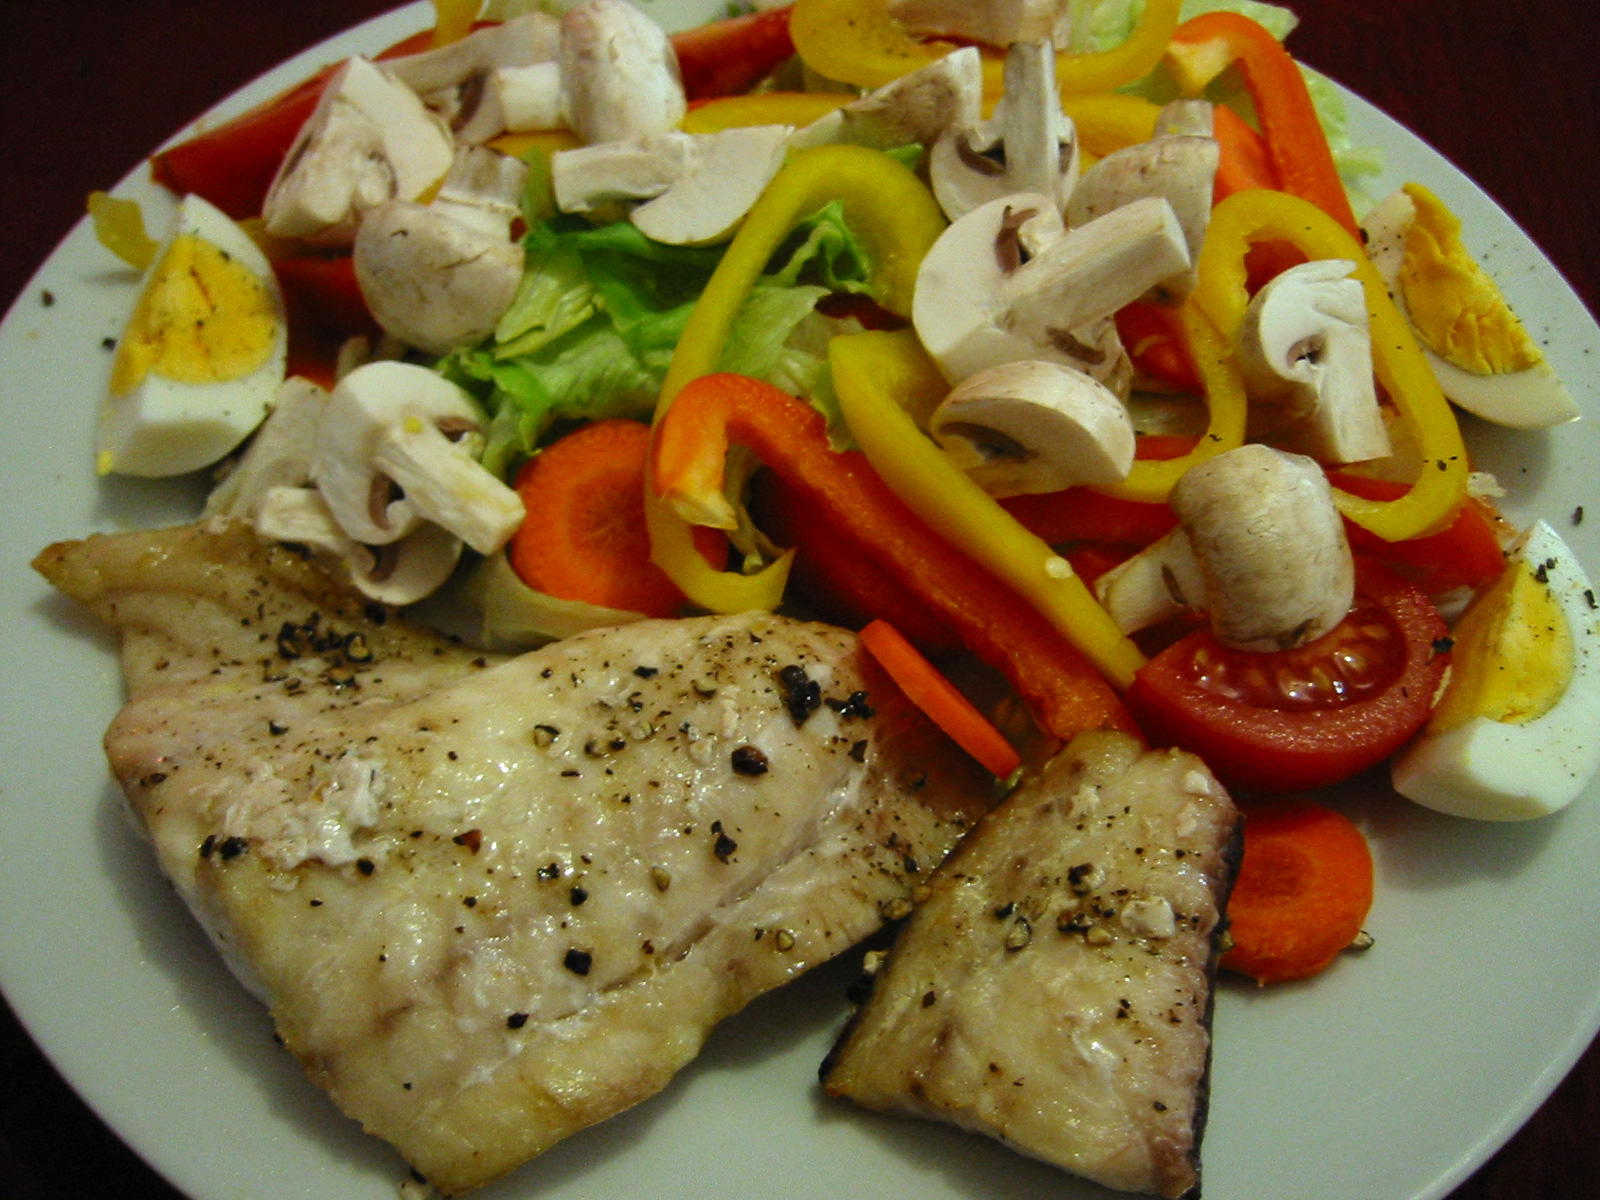 Grilled snapper with salad and hard-boiled egg